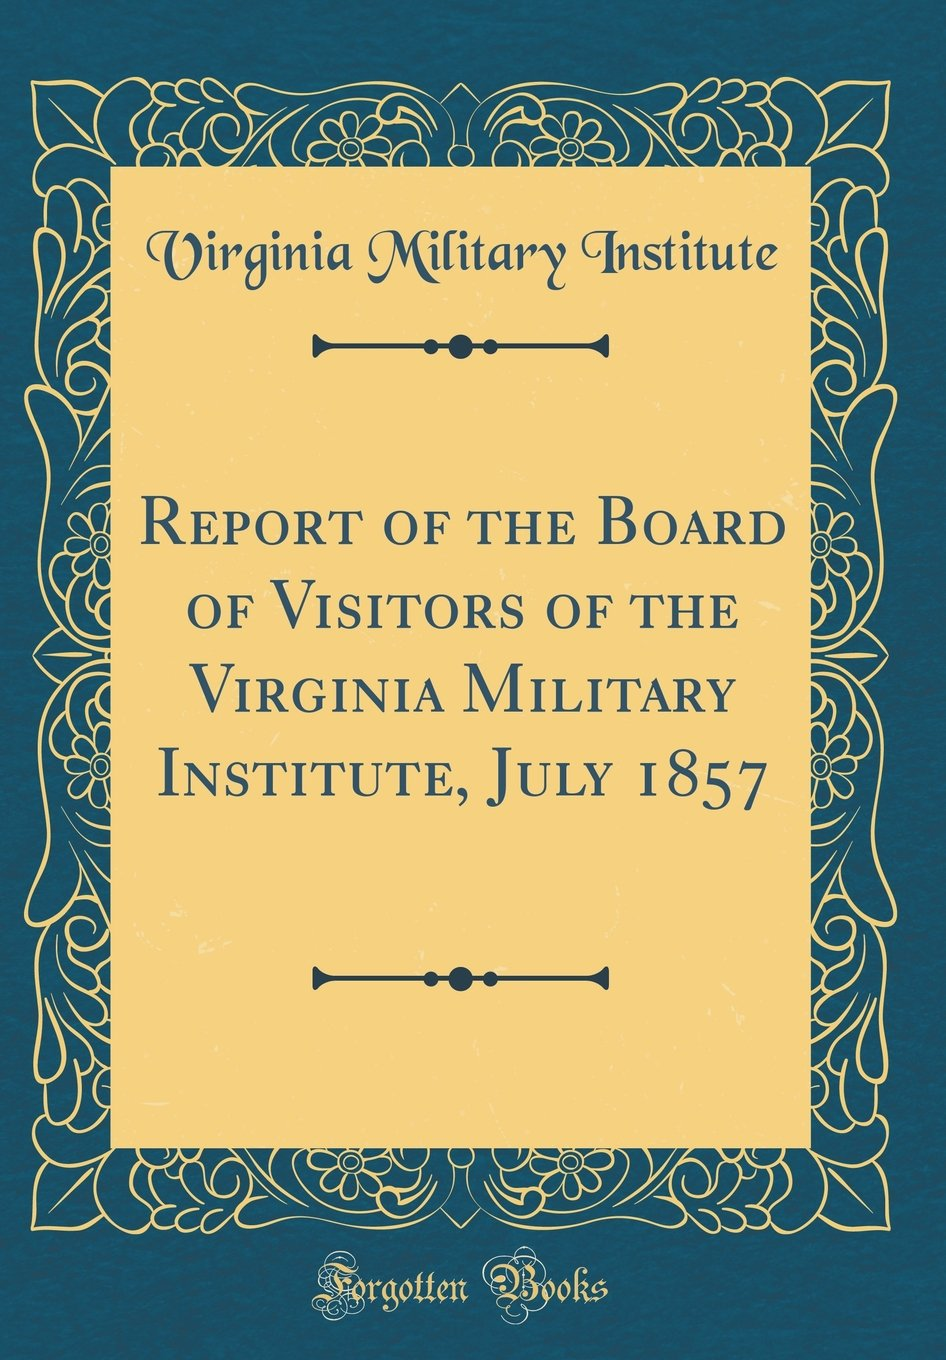 Read Online Report of the Board of Visitors of the Virginia Military Institute, July 1857 (Classic Reprint) ebook